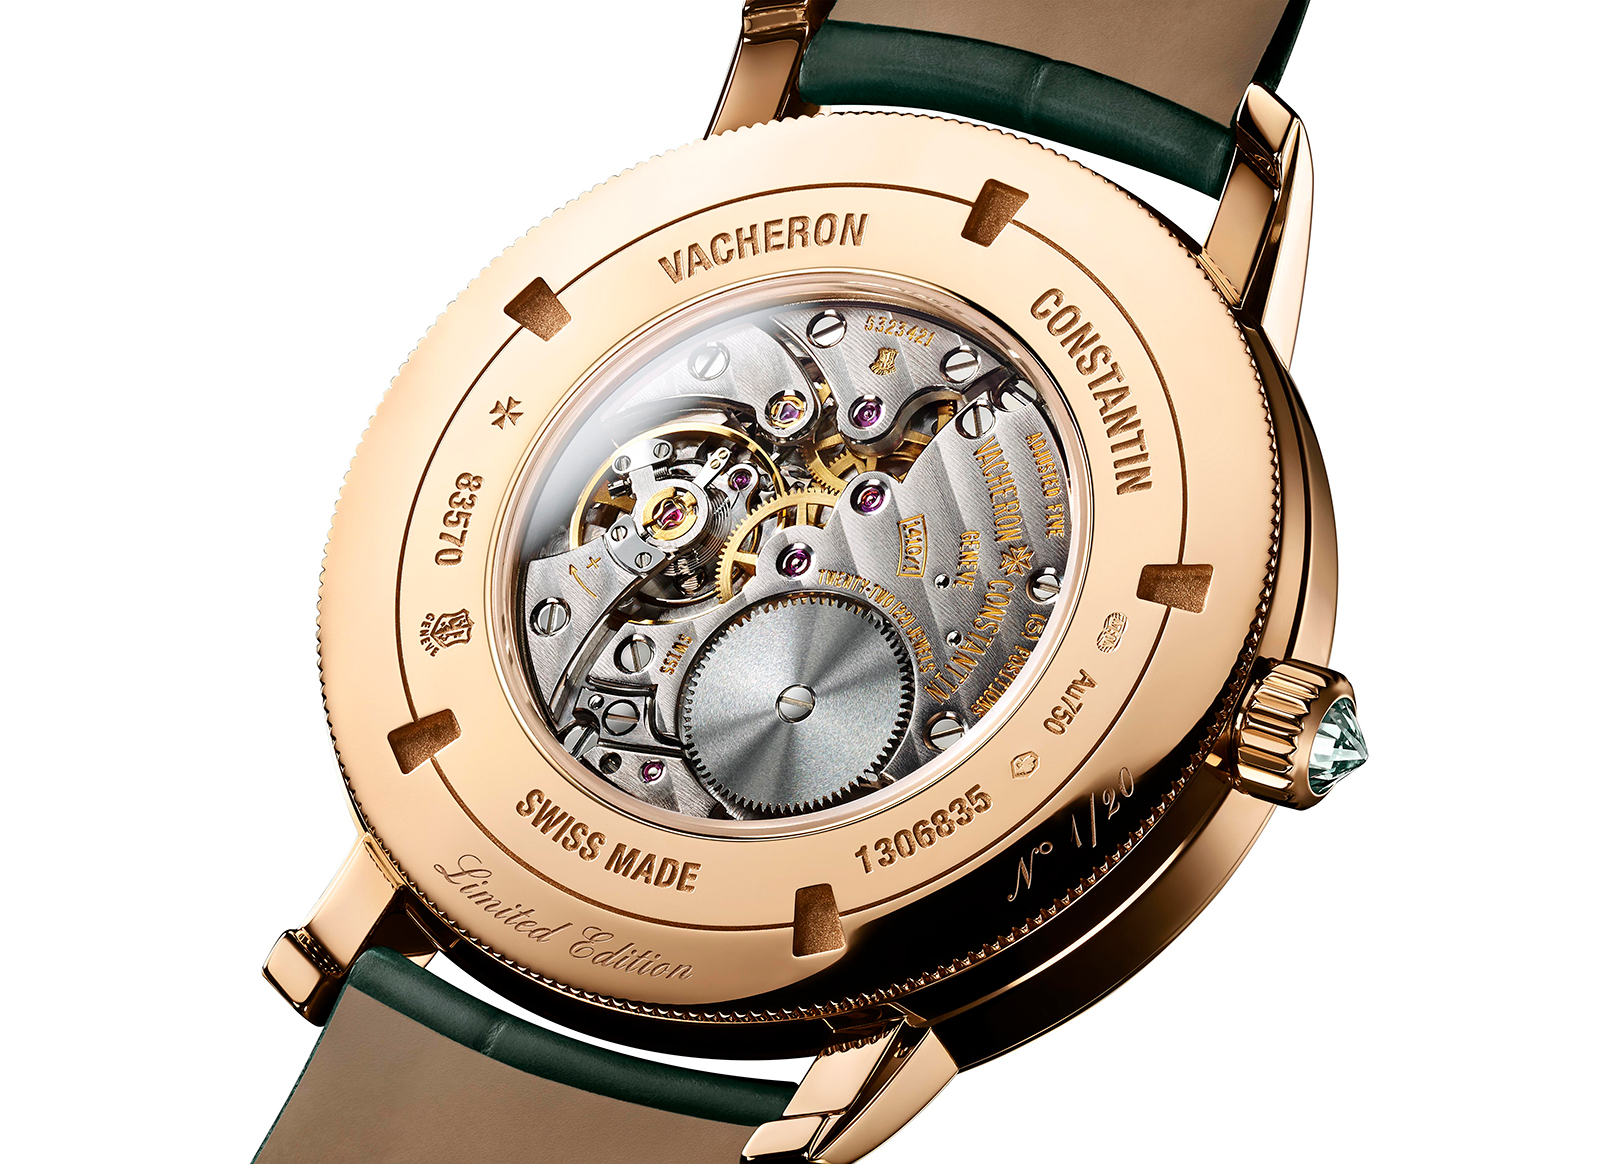 Vacheron Constantin Traditionnelle Self-Winding Harrod_s movement